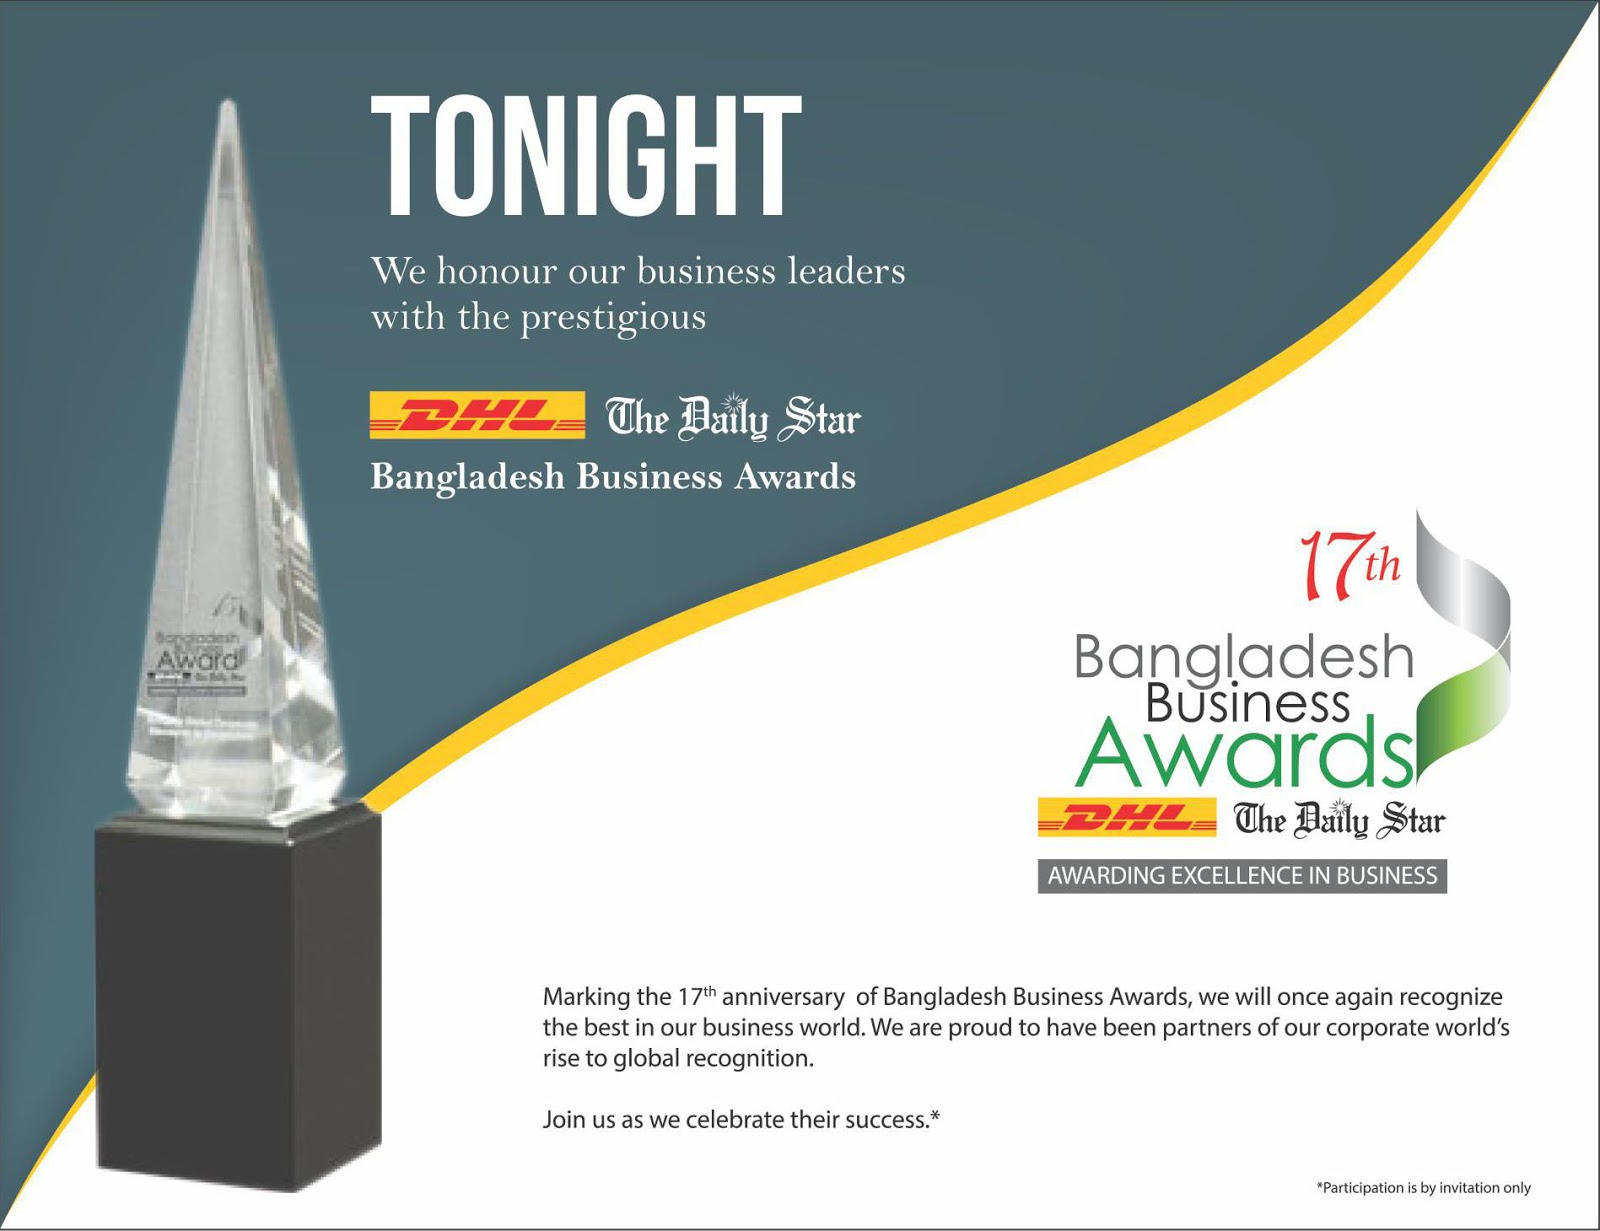 Advertising Archive Bangladesh: DHL, The Daily Star - 17th